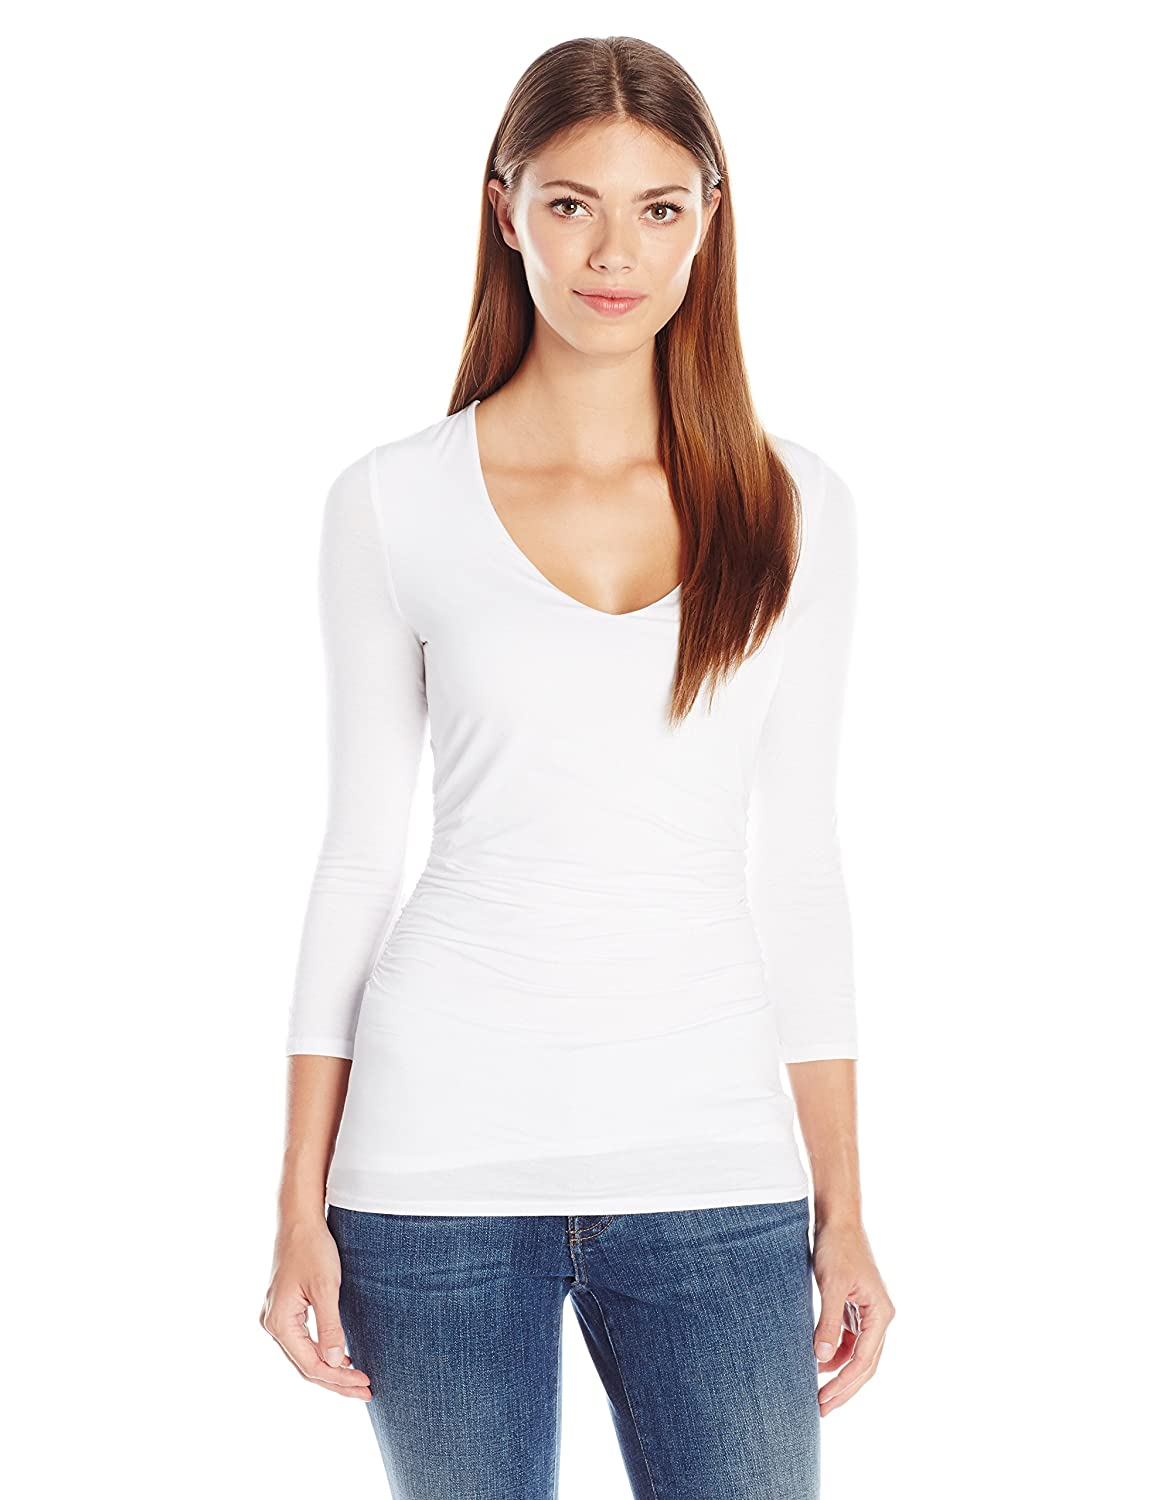 23dfab02f391 low-cost Three Dots Women s 3 4 Slv V-Neck Shirred Top - clicklabs.de